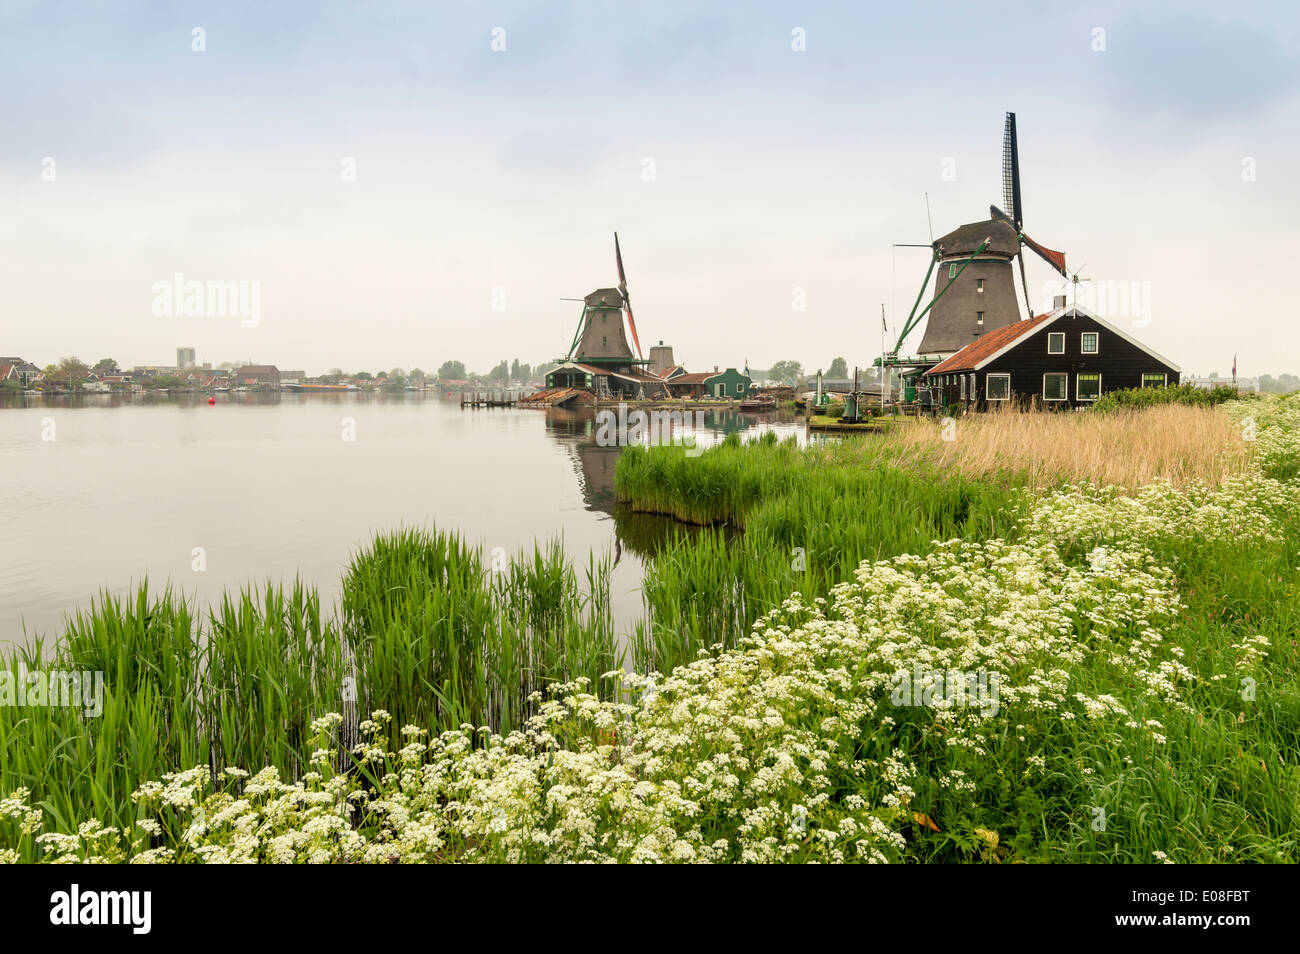 WINDMILLS AT ZAANSE SCHANS WITH CANAL AND WATER HEMLOCK FLOWERS IN SPRINGTIME HOLLAND - Stock Image